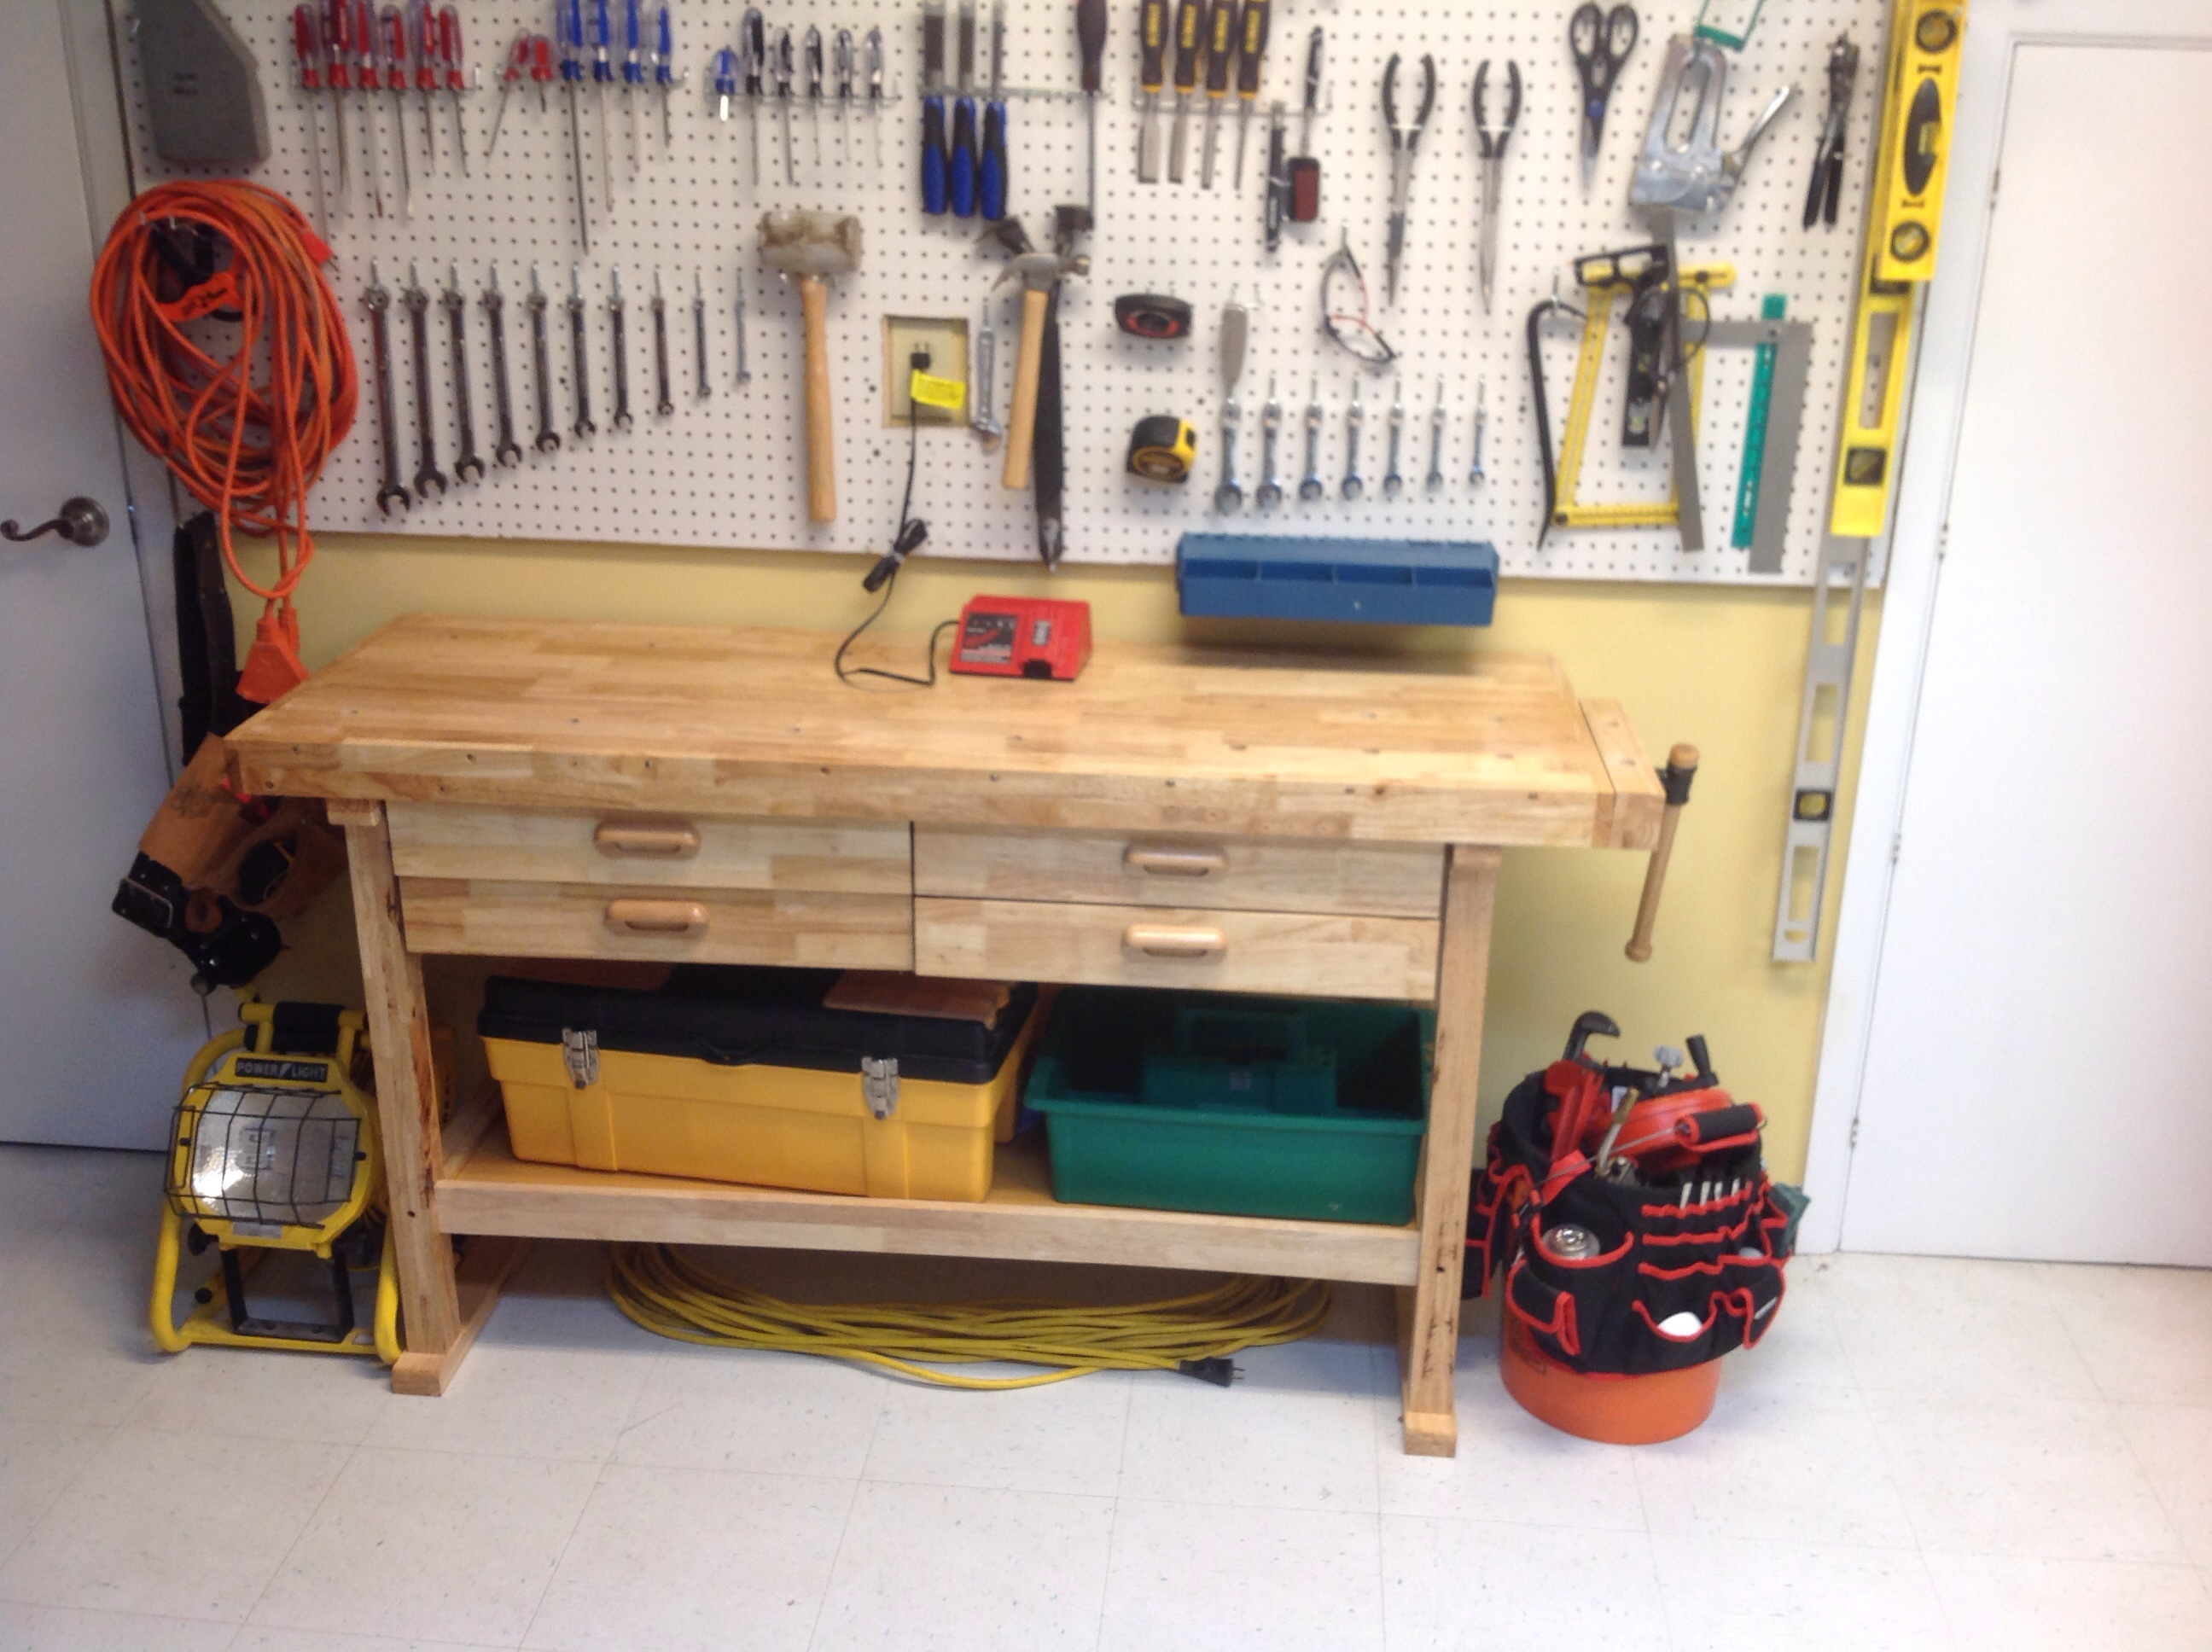 Reloading Benches | Reloading Desk | Compact Reloading Bench